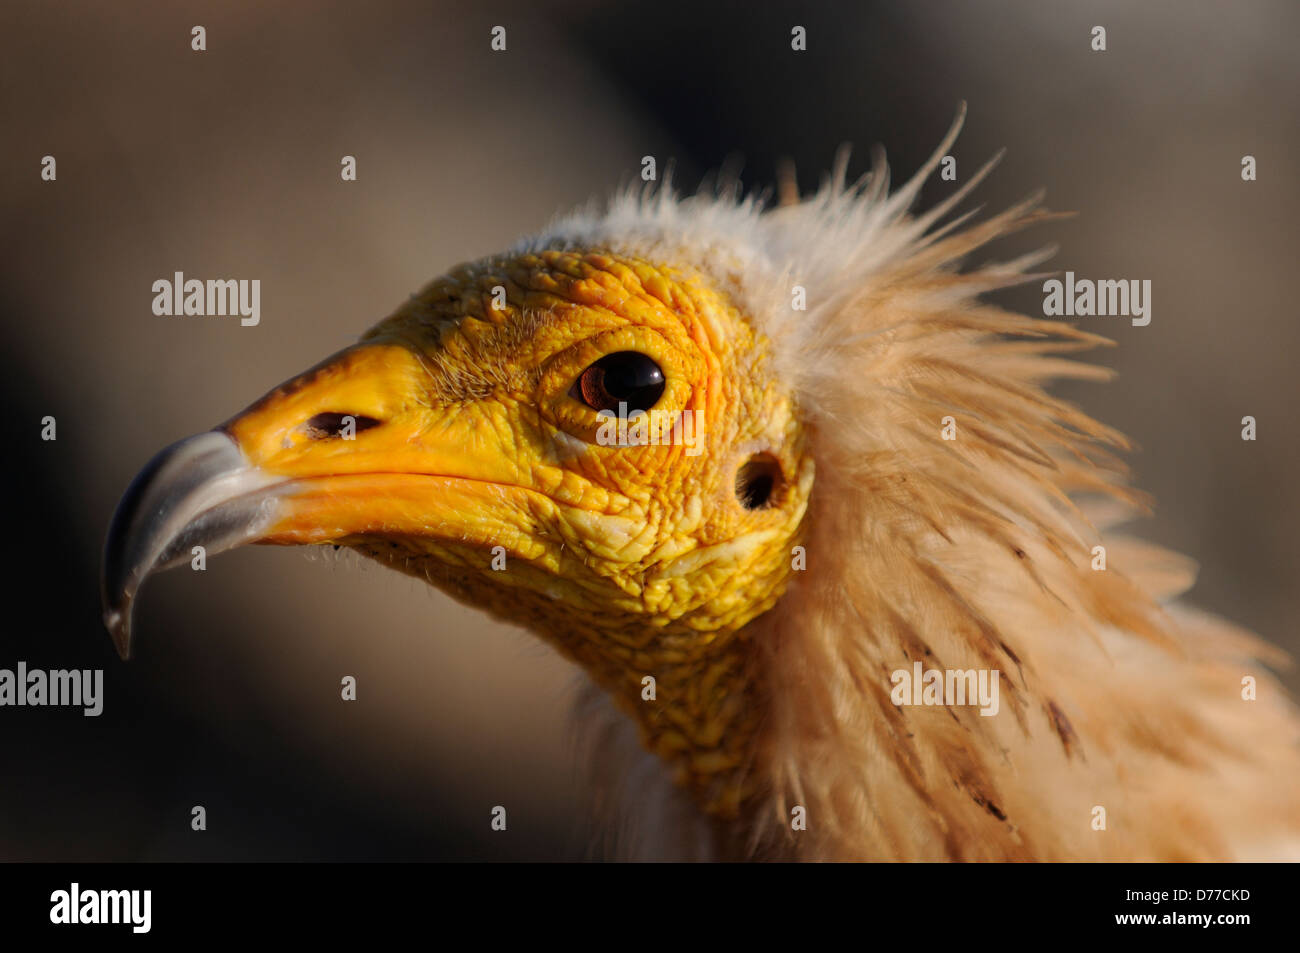 Portrait from an Egyptian vulture in Yemen, Socotra - Stock Image